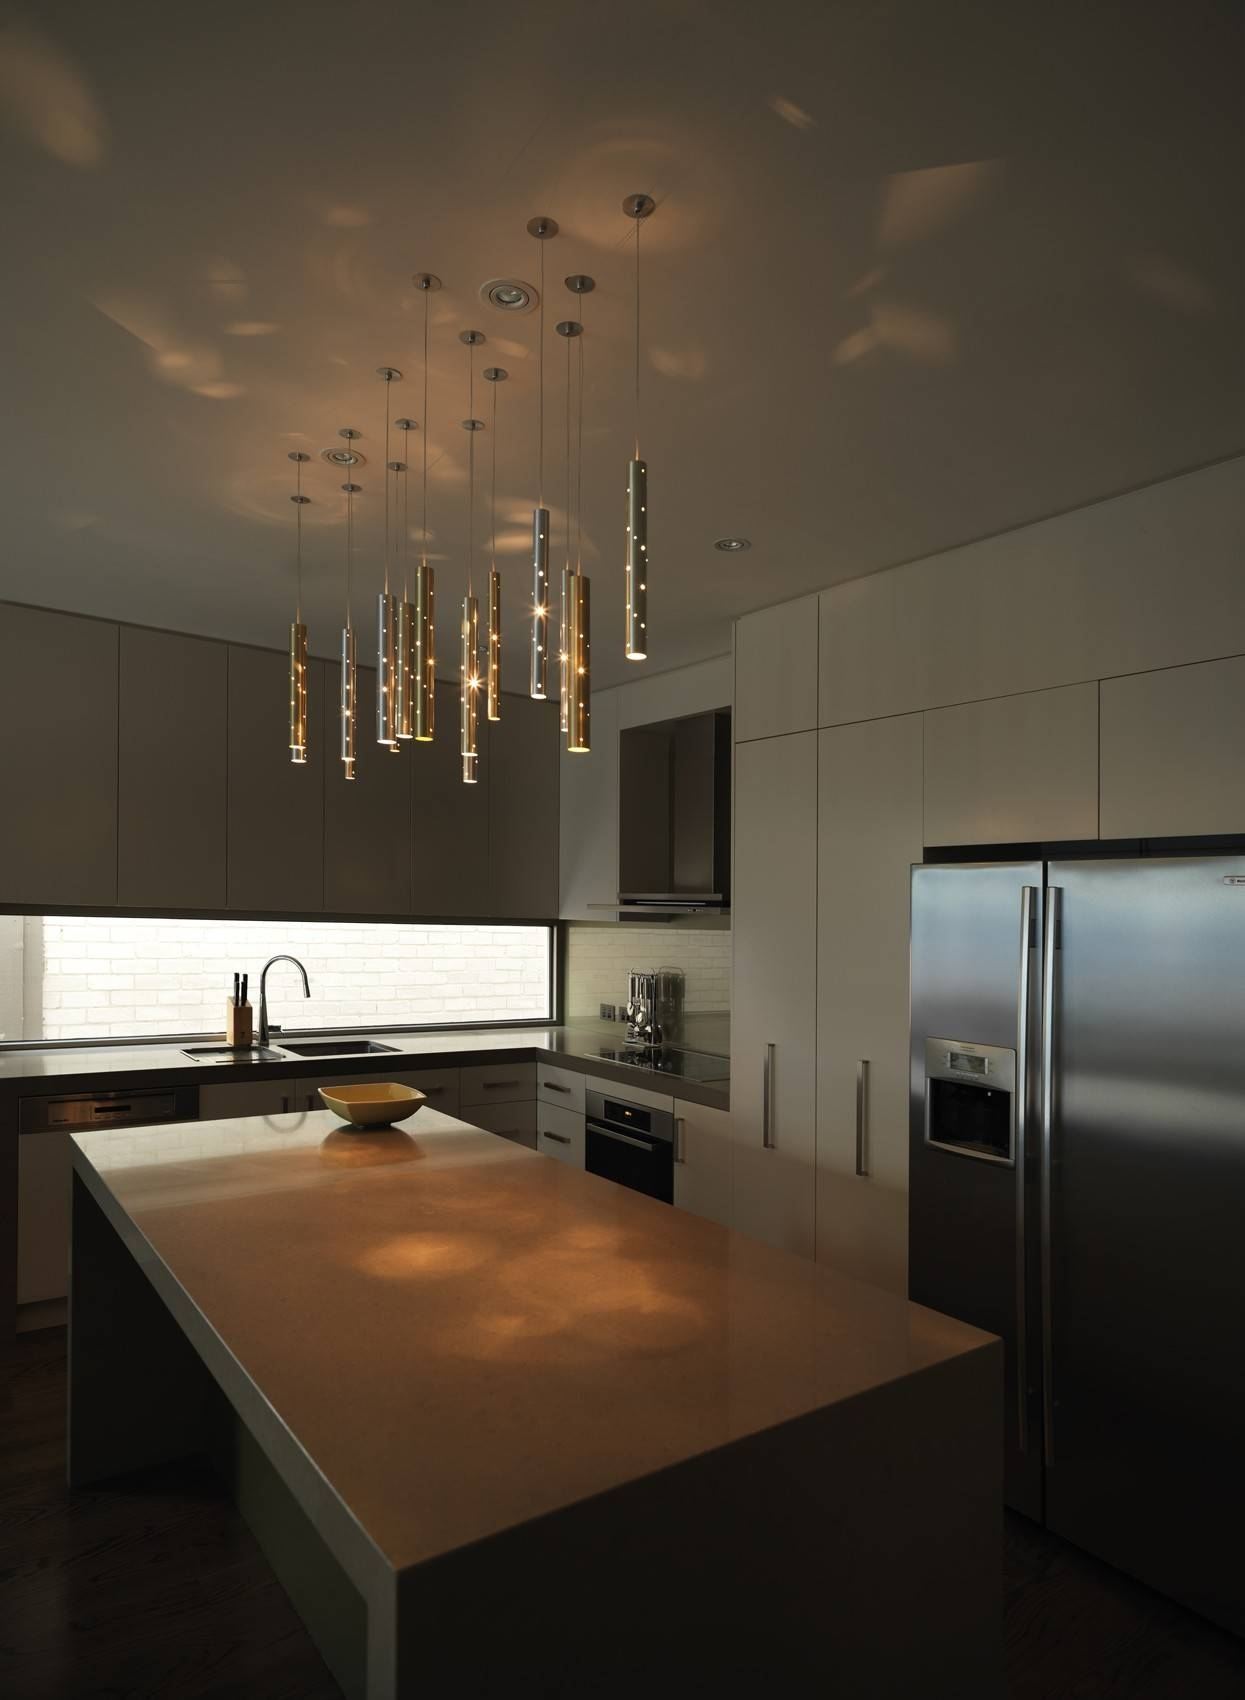 Track Lighting Pendants | Home Designs within Track Lighting Pendants (Image 14 of 15)